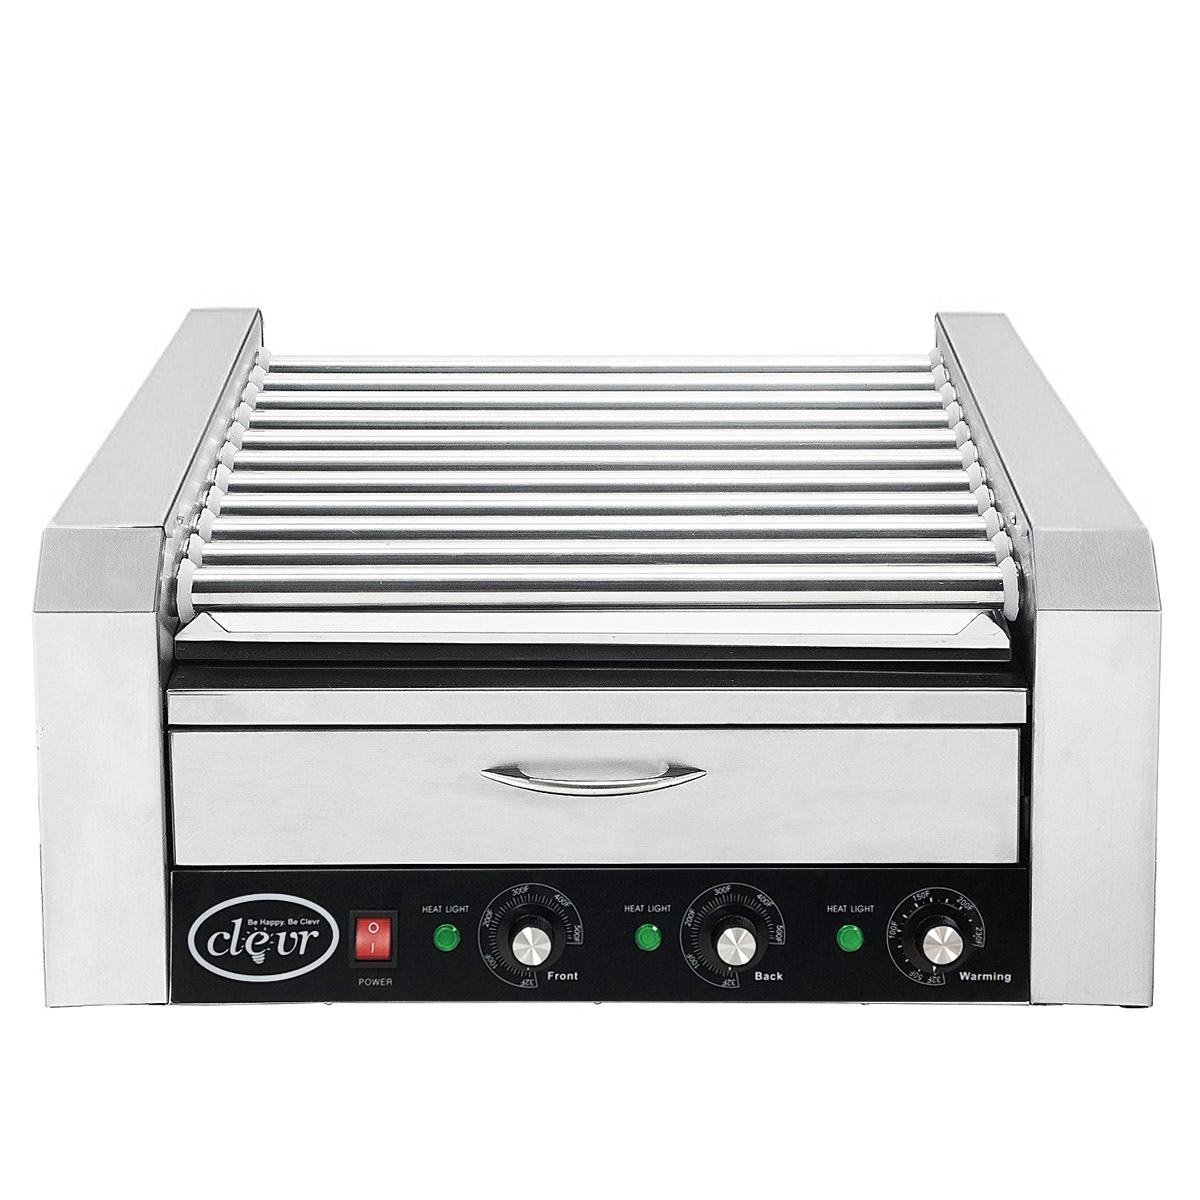 Clevr Commercial 11 Roller and 30 Hotdog Machine with Bun Warming Drawer, Hot Dog Grill Cooker Roller